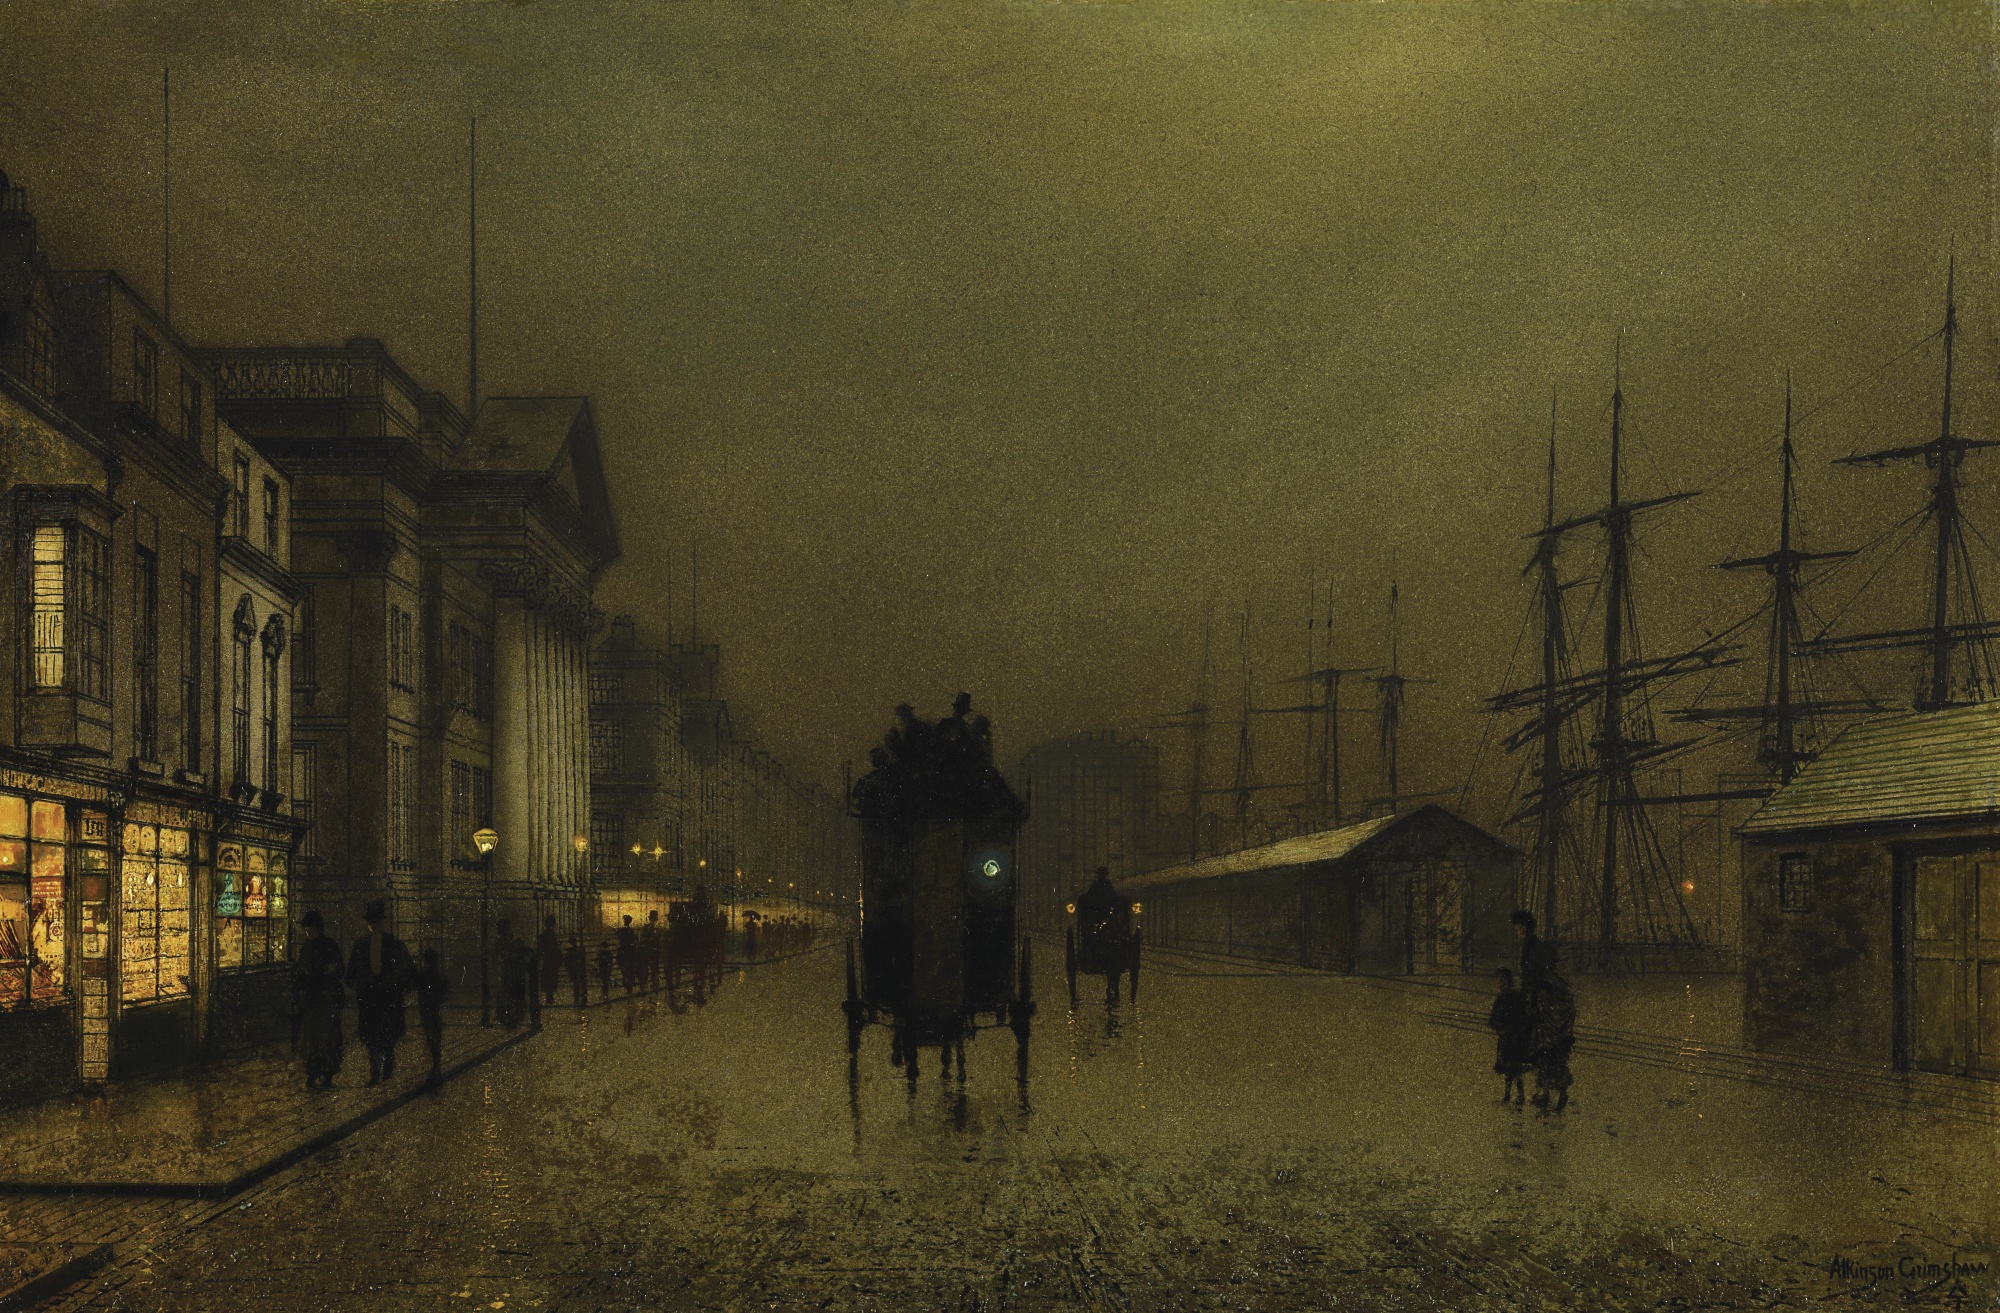 The Docks at Liverpool, by John Atkinson Grimshaw